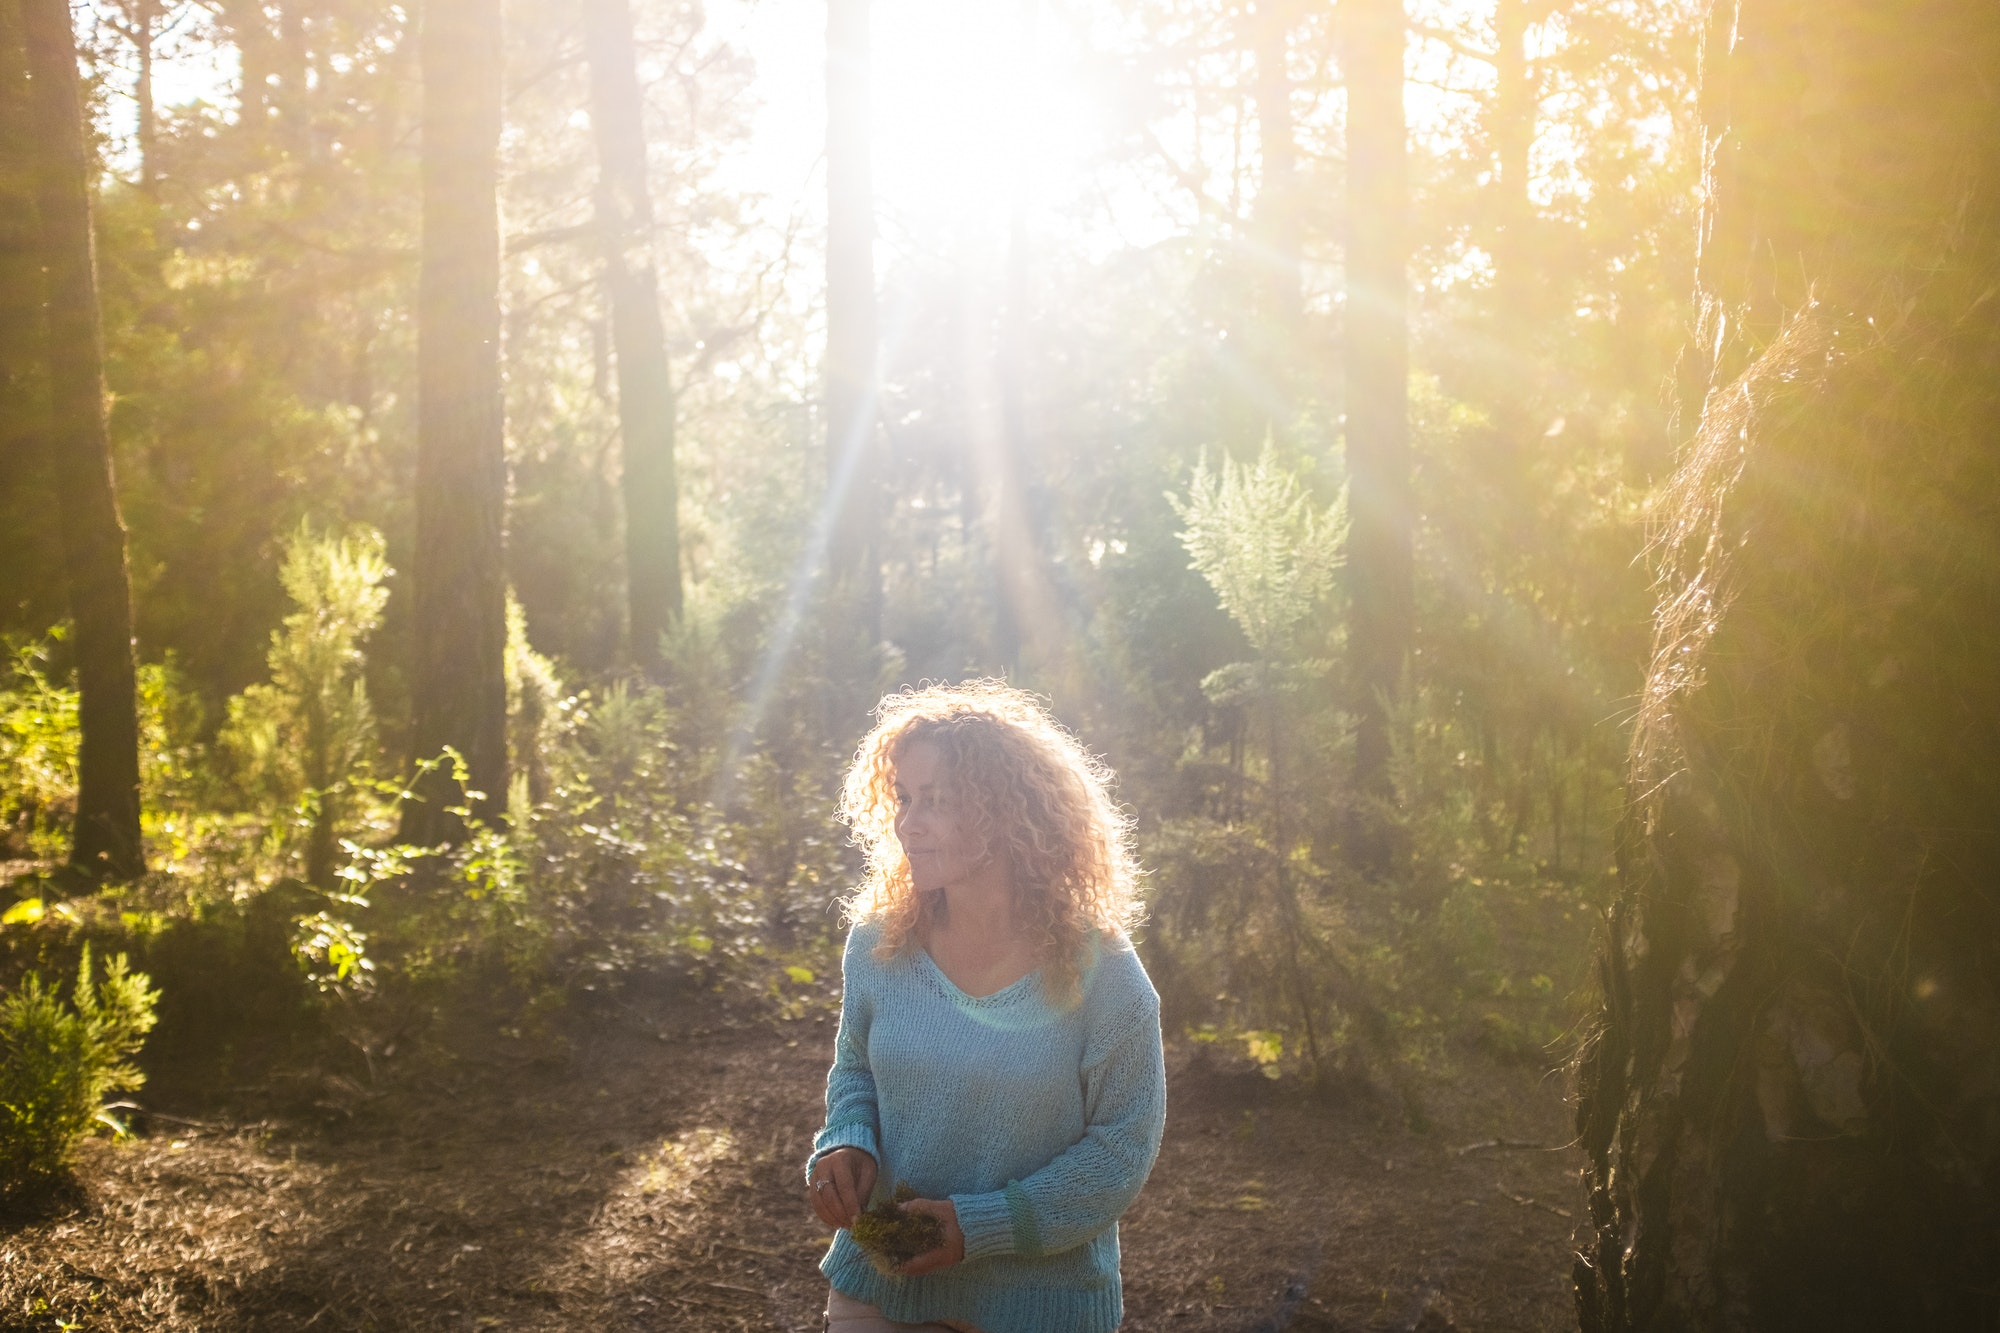 People walking in the forest wood in outdoor leisure activity